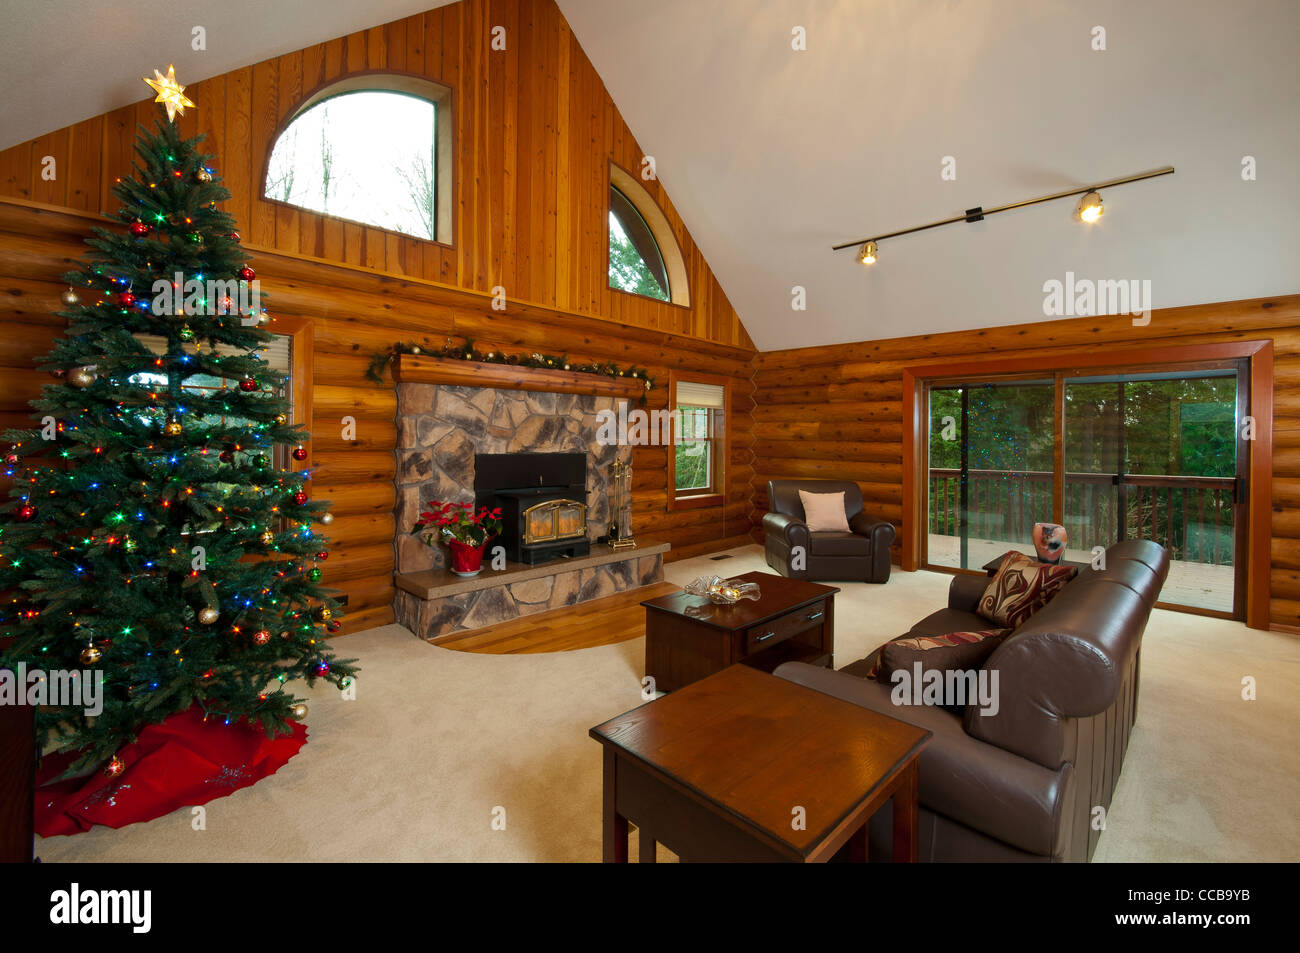 Log Cabin Living Room, Wide Angle View, Showing Fireplace, Stove, And